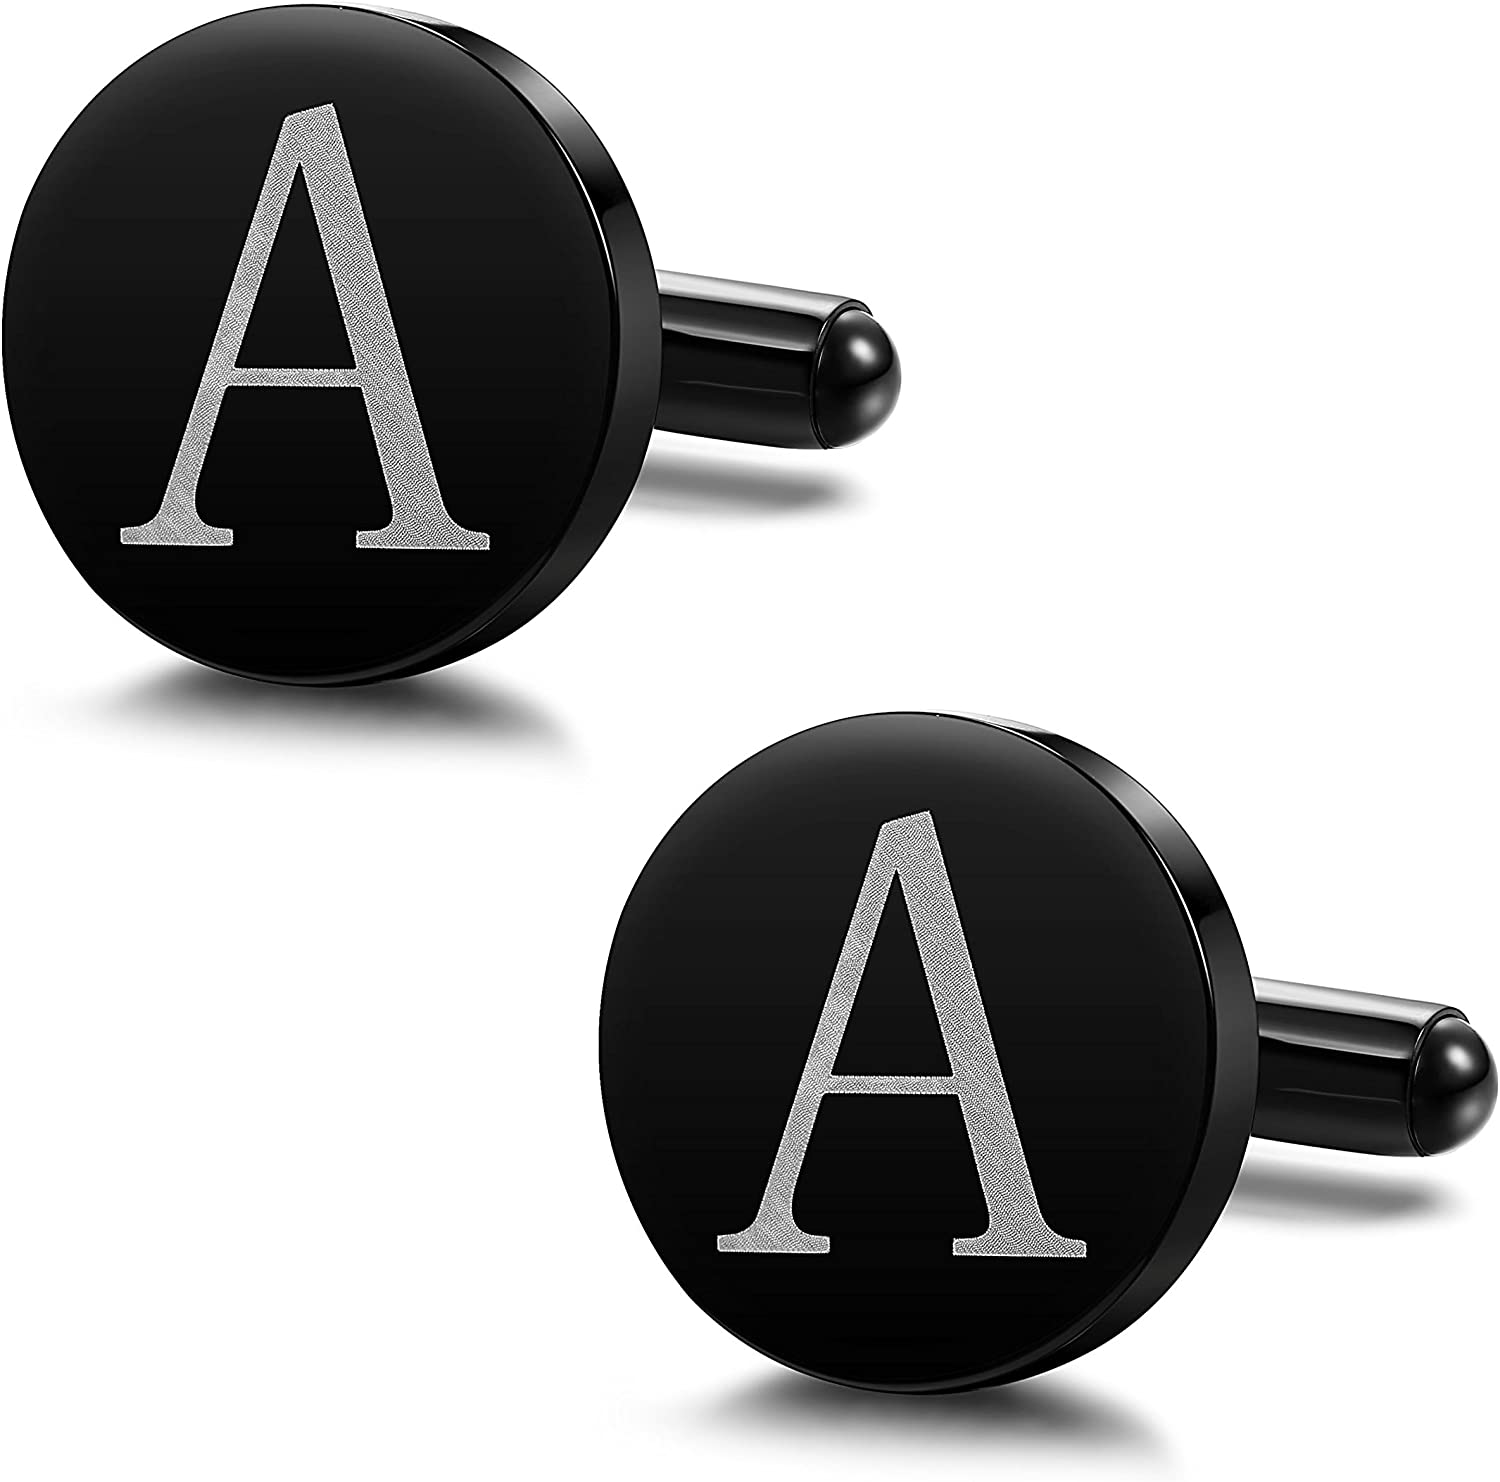 ORAZIO Mens Classic Stainless Steel Engraved Initial Cufflinks Alphabet Letter Cufflinks Formal Kit Business Wedding Shirts A-Z 26 Letter